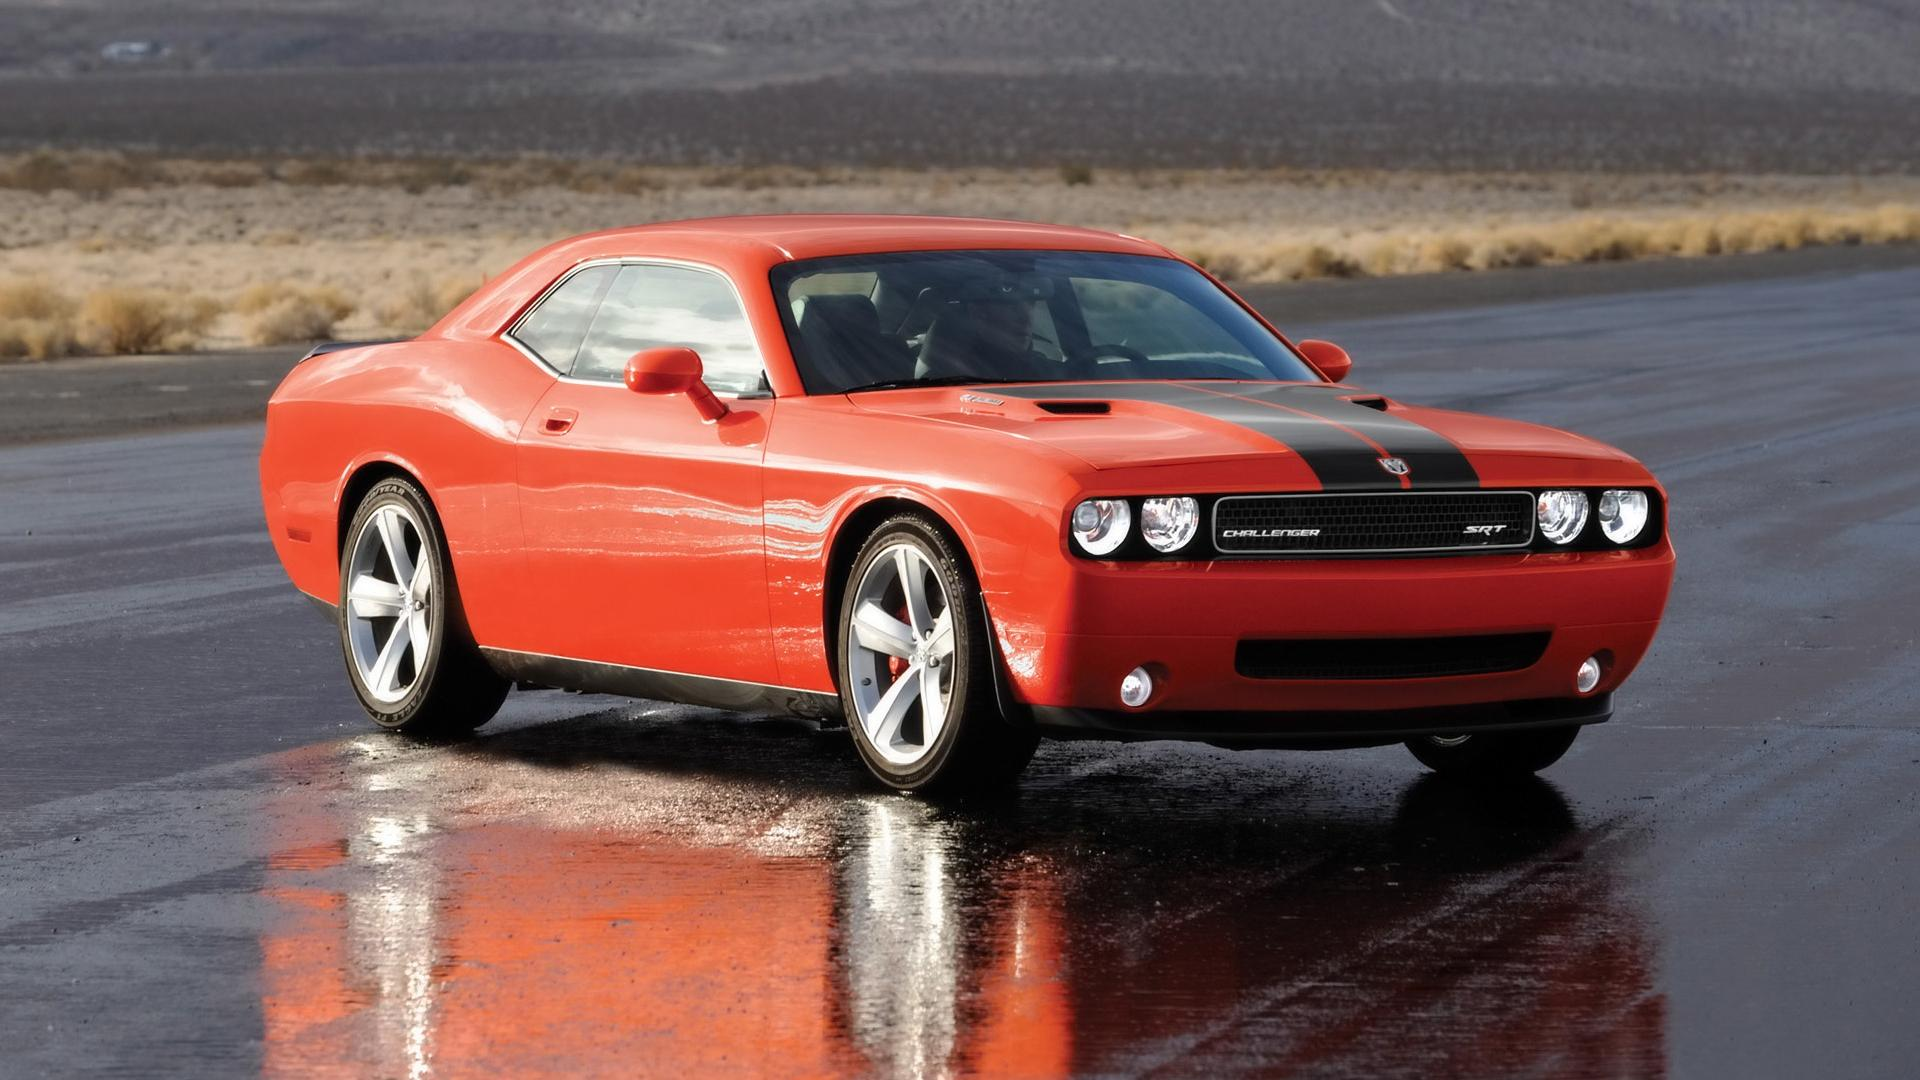 2008 Dodge Challenger Srt8 Side Angle Wet Pavement 1920x1080